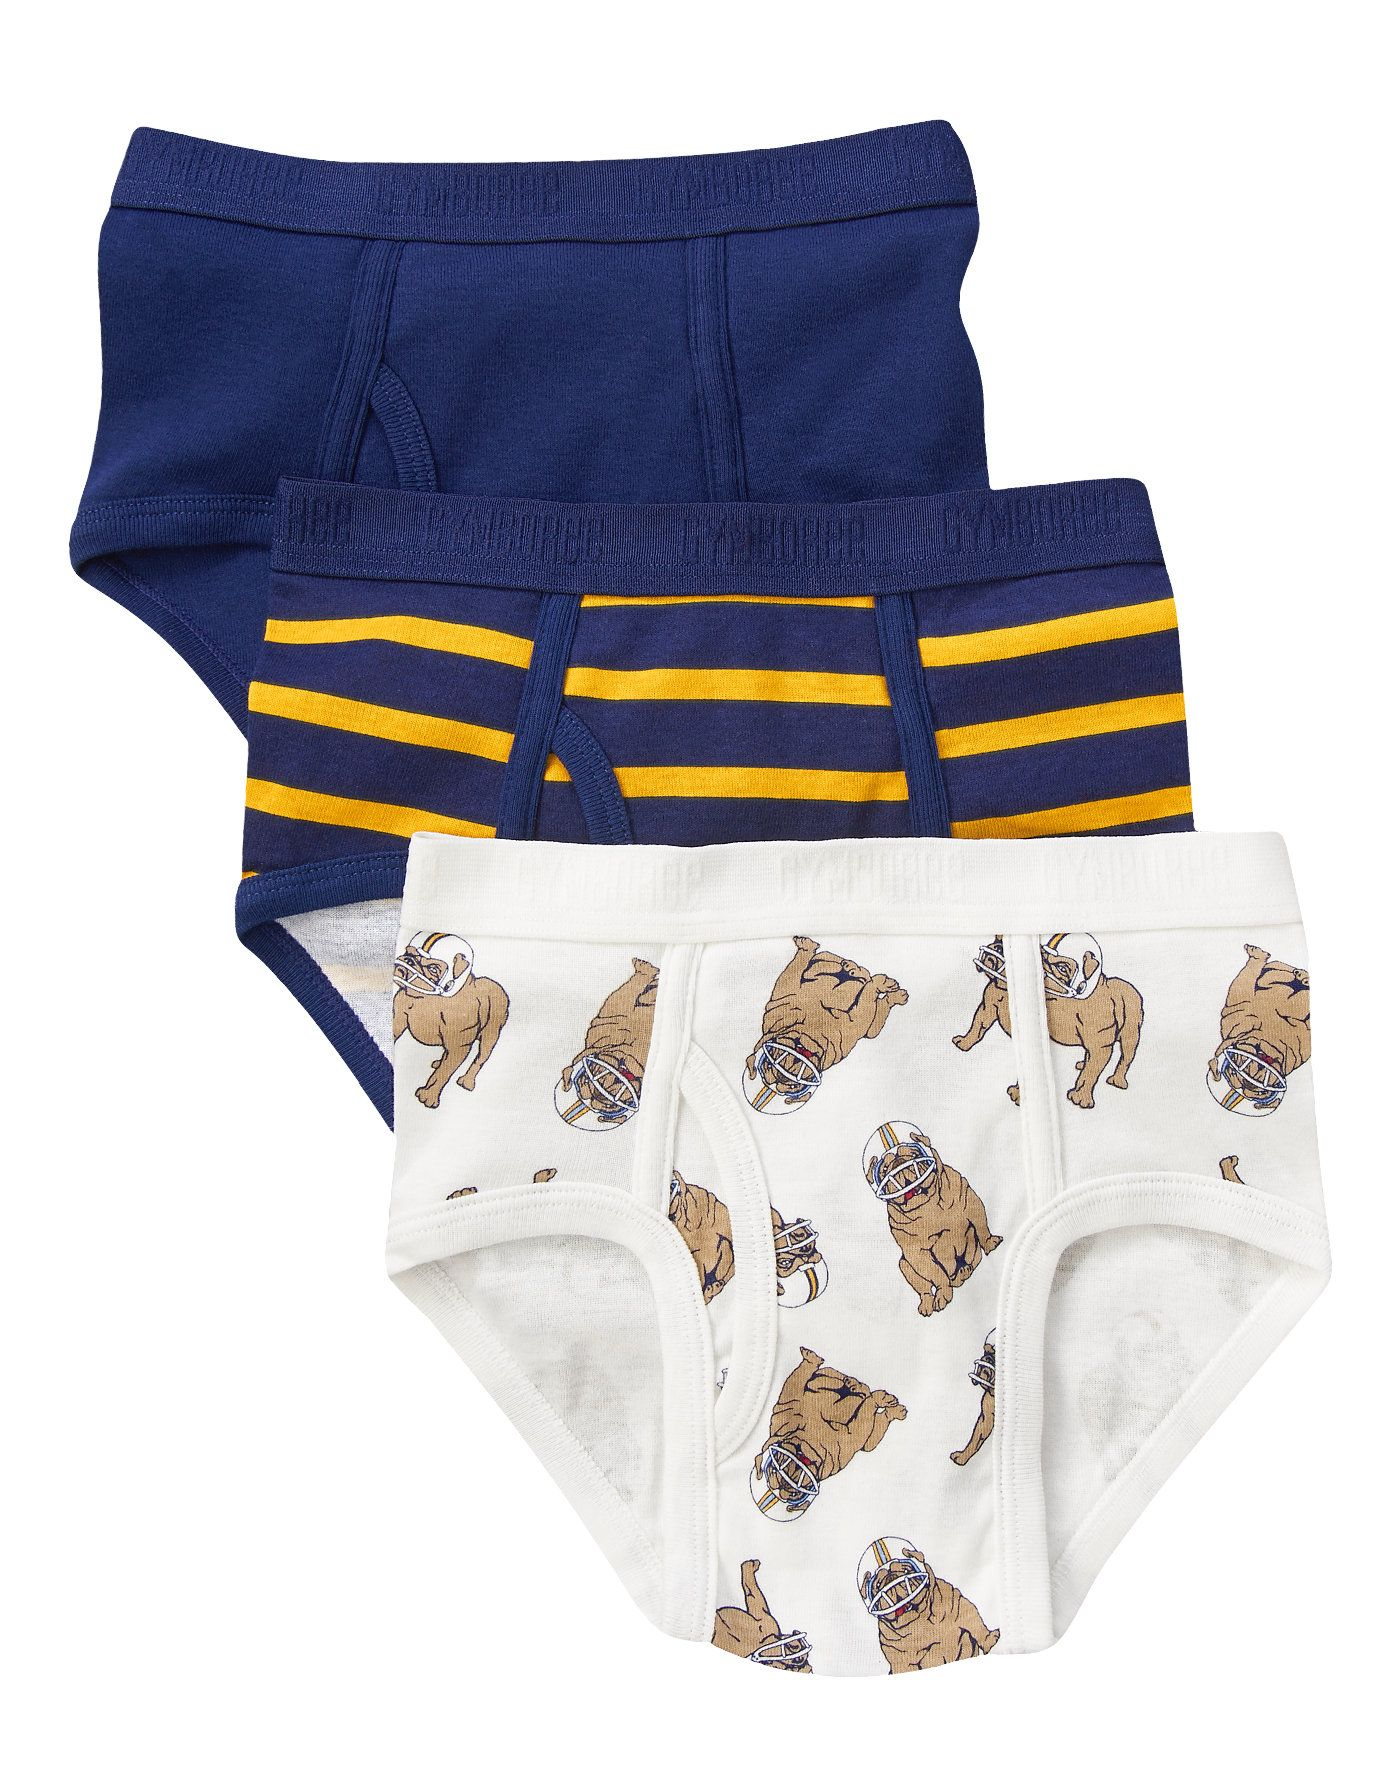 Bull Dog Blue Briefs Three Pack At Gymboree Underwear